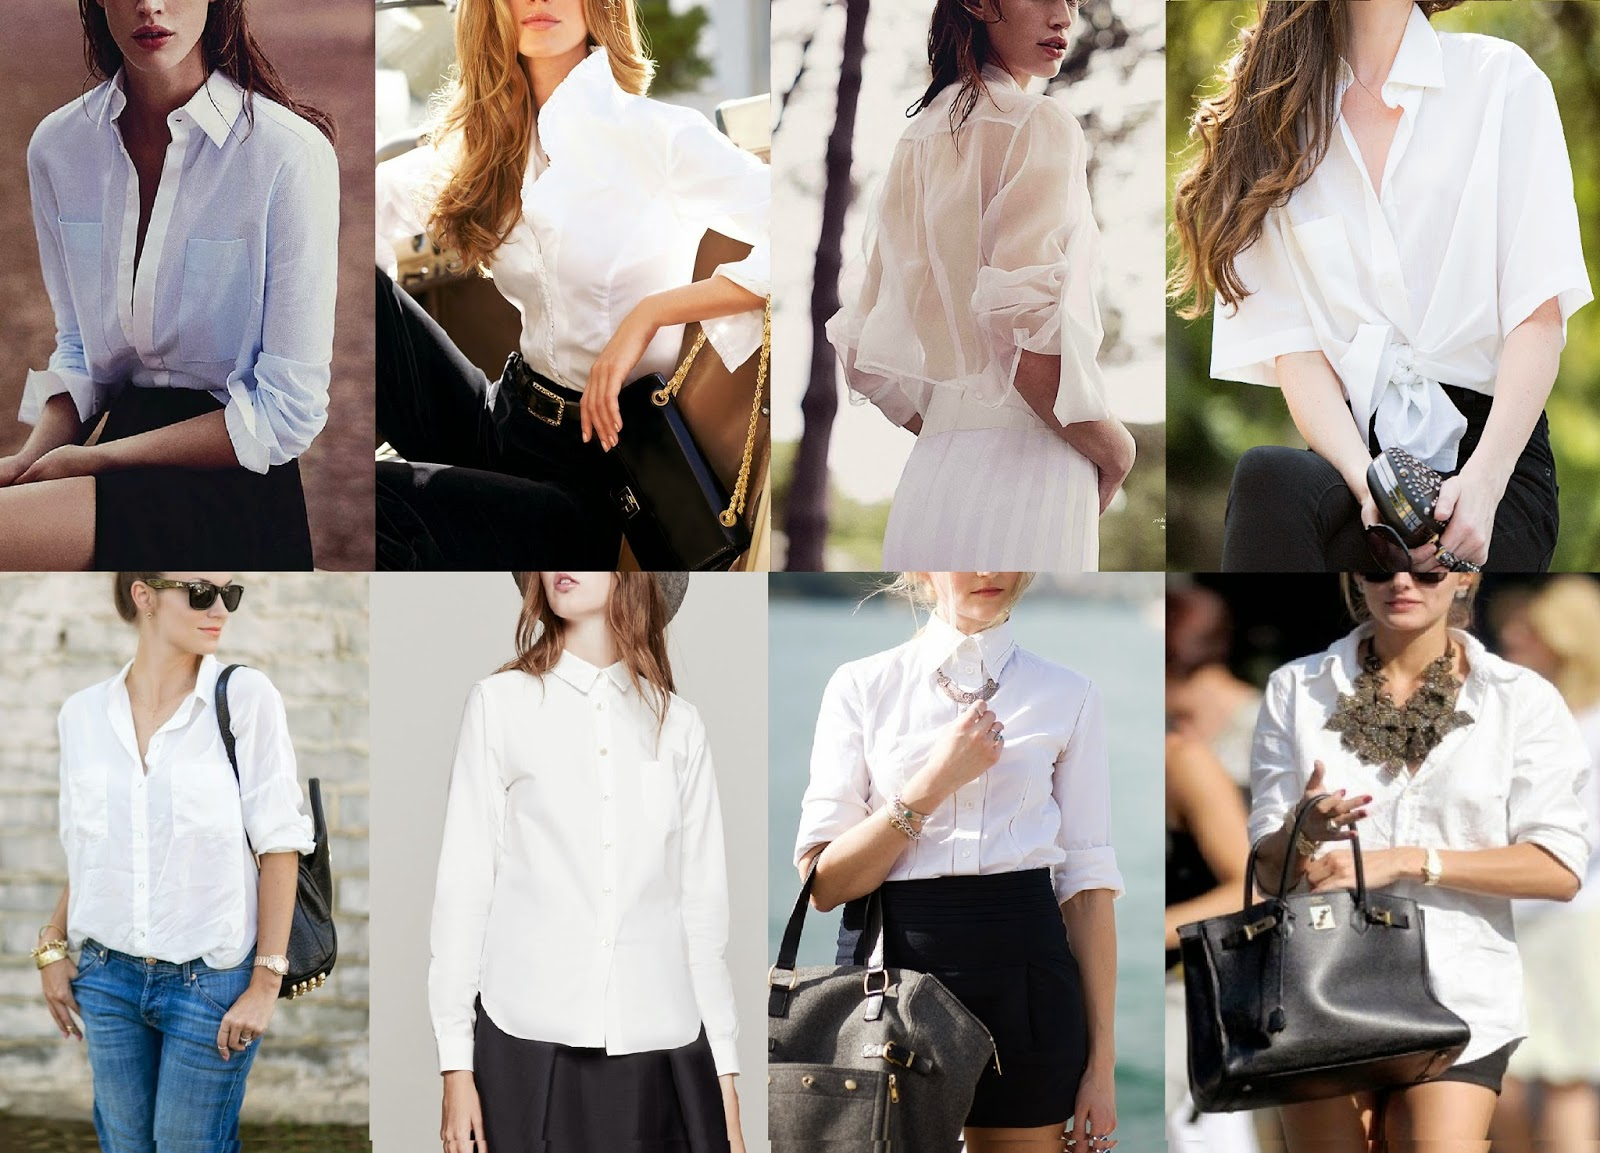 How to create scrapbook on limeroad - Effortlessly Stylish And Sophisticated Clean Look Of A White Shirt Makes It The Most Prized Possession In Your Wardrobe Be It A Sharp Look For A Working